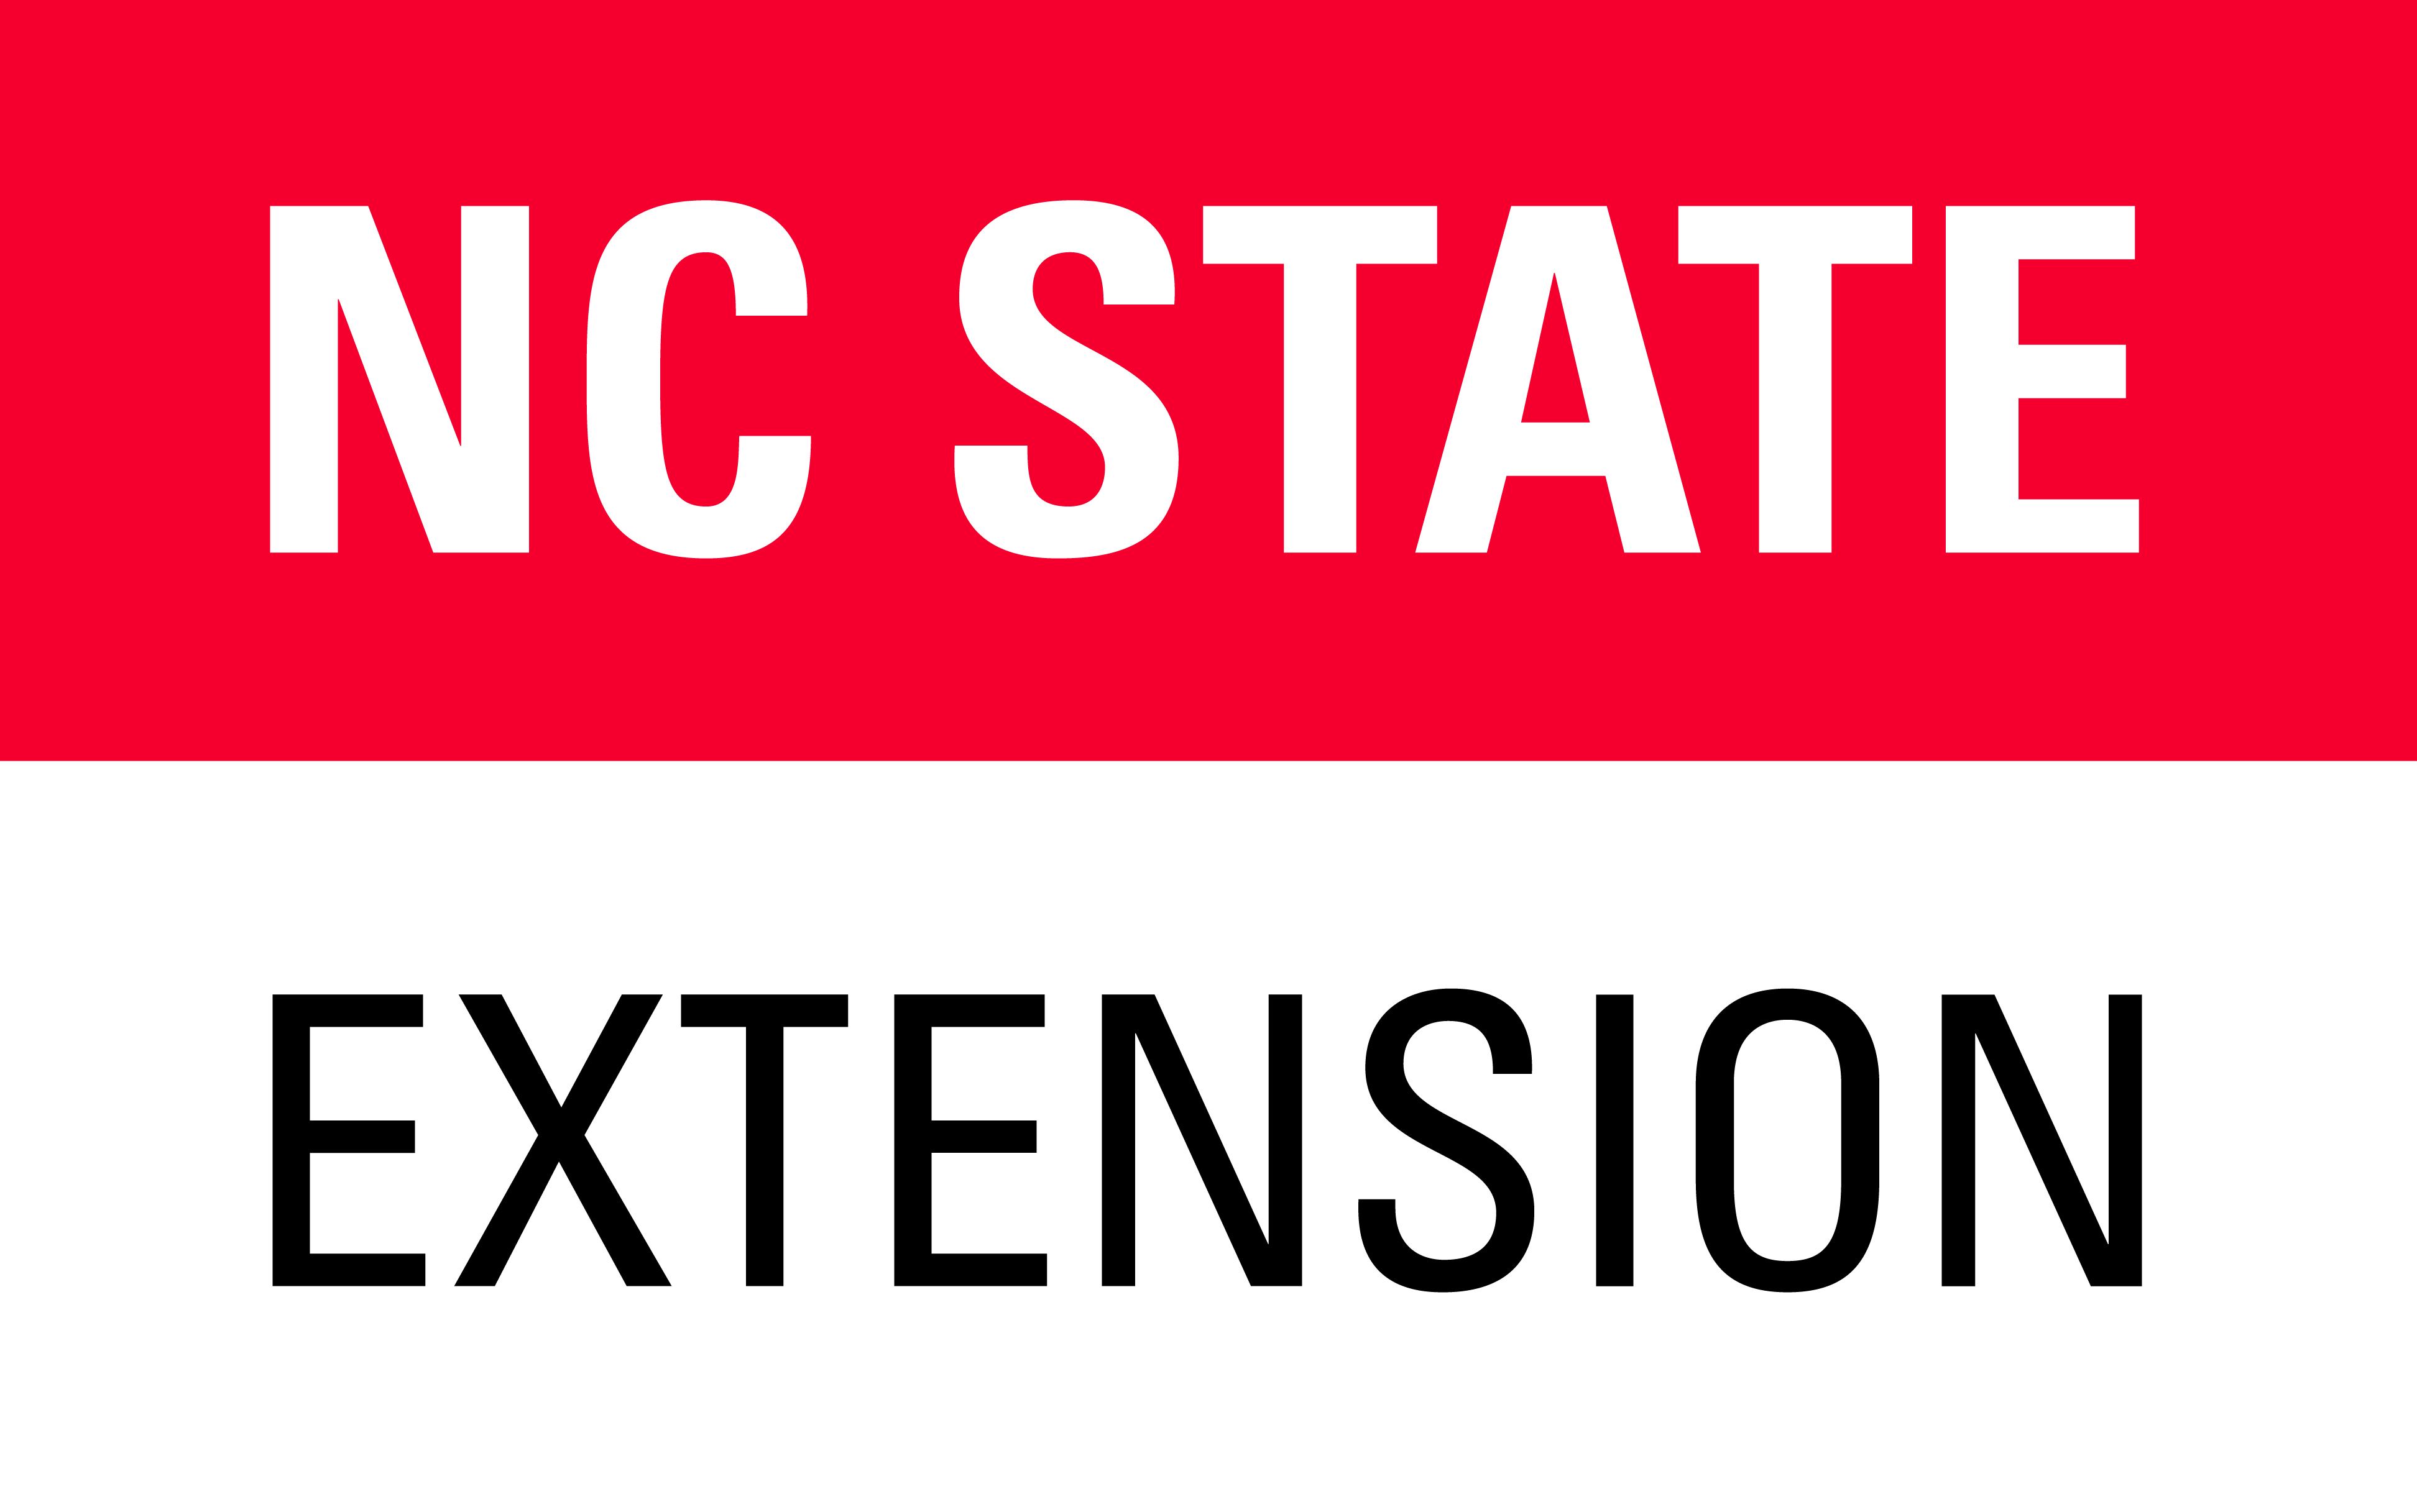 marketing downloads | nc state extension, Presentation templates